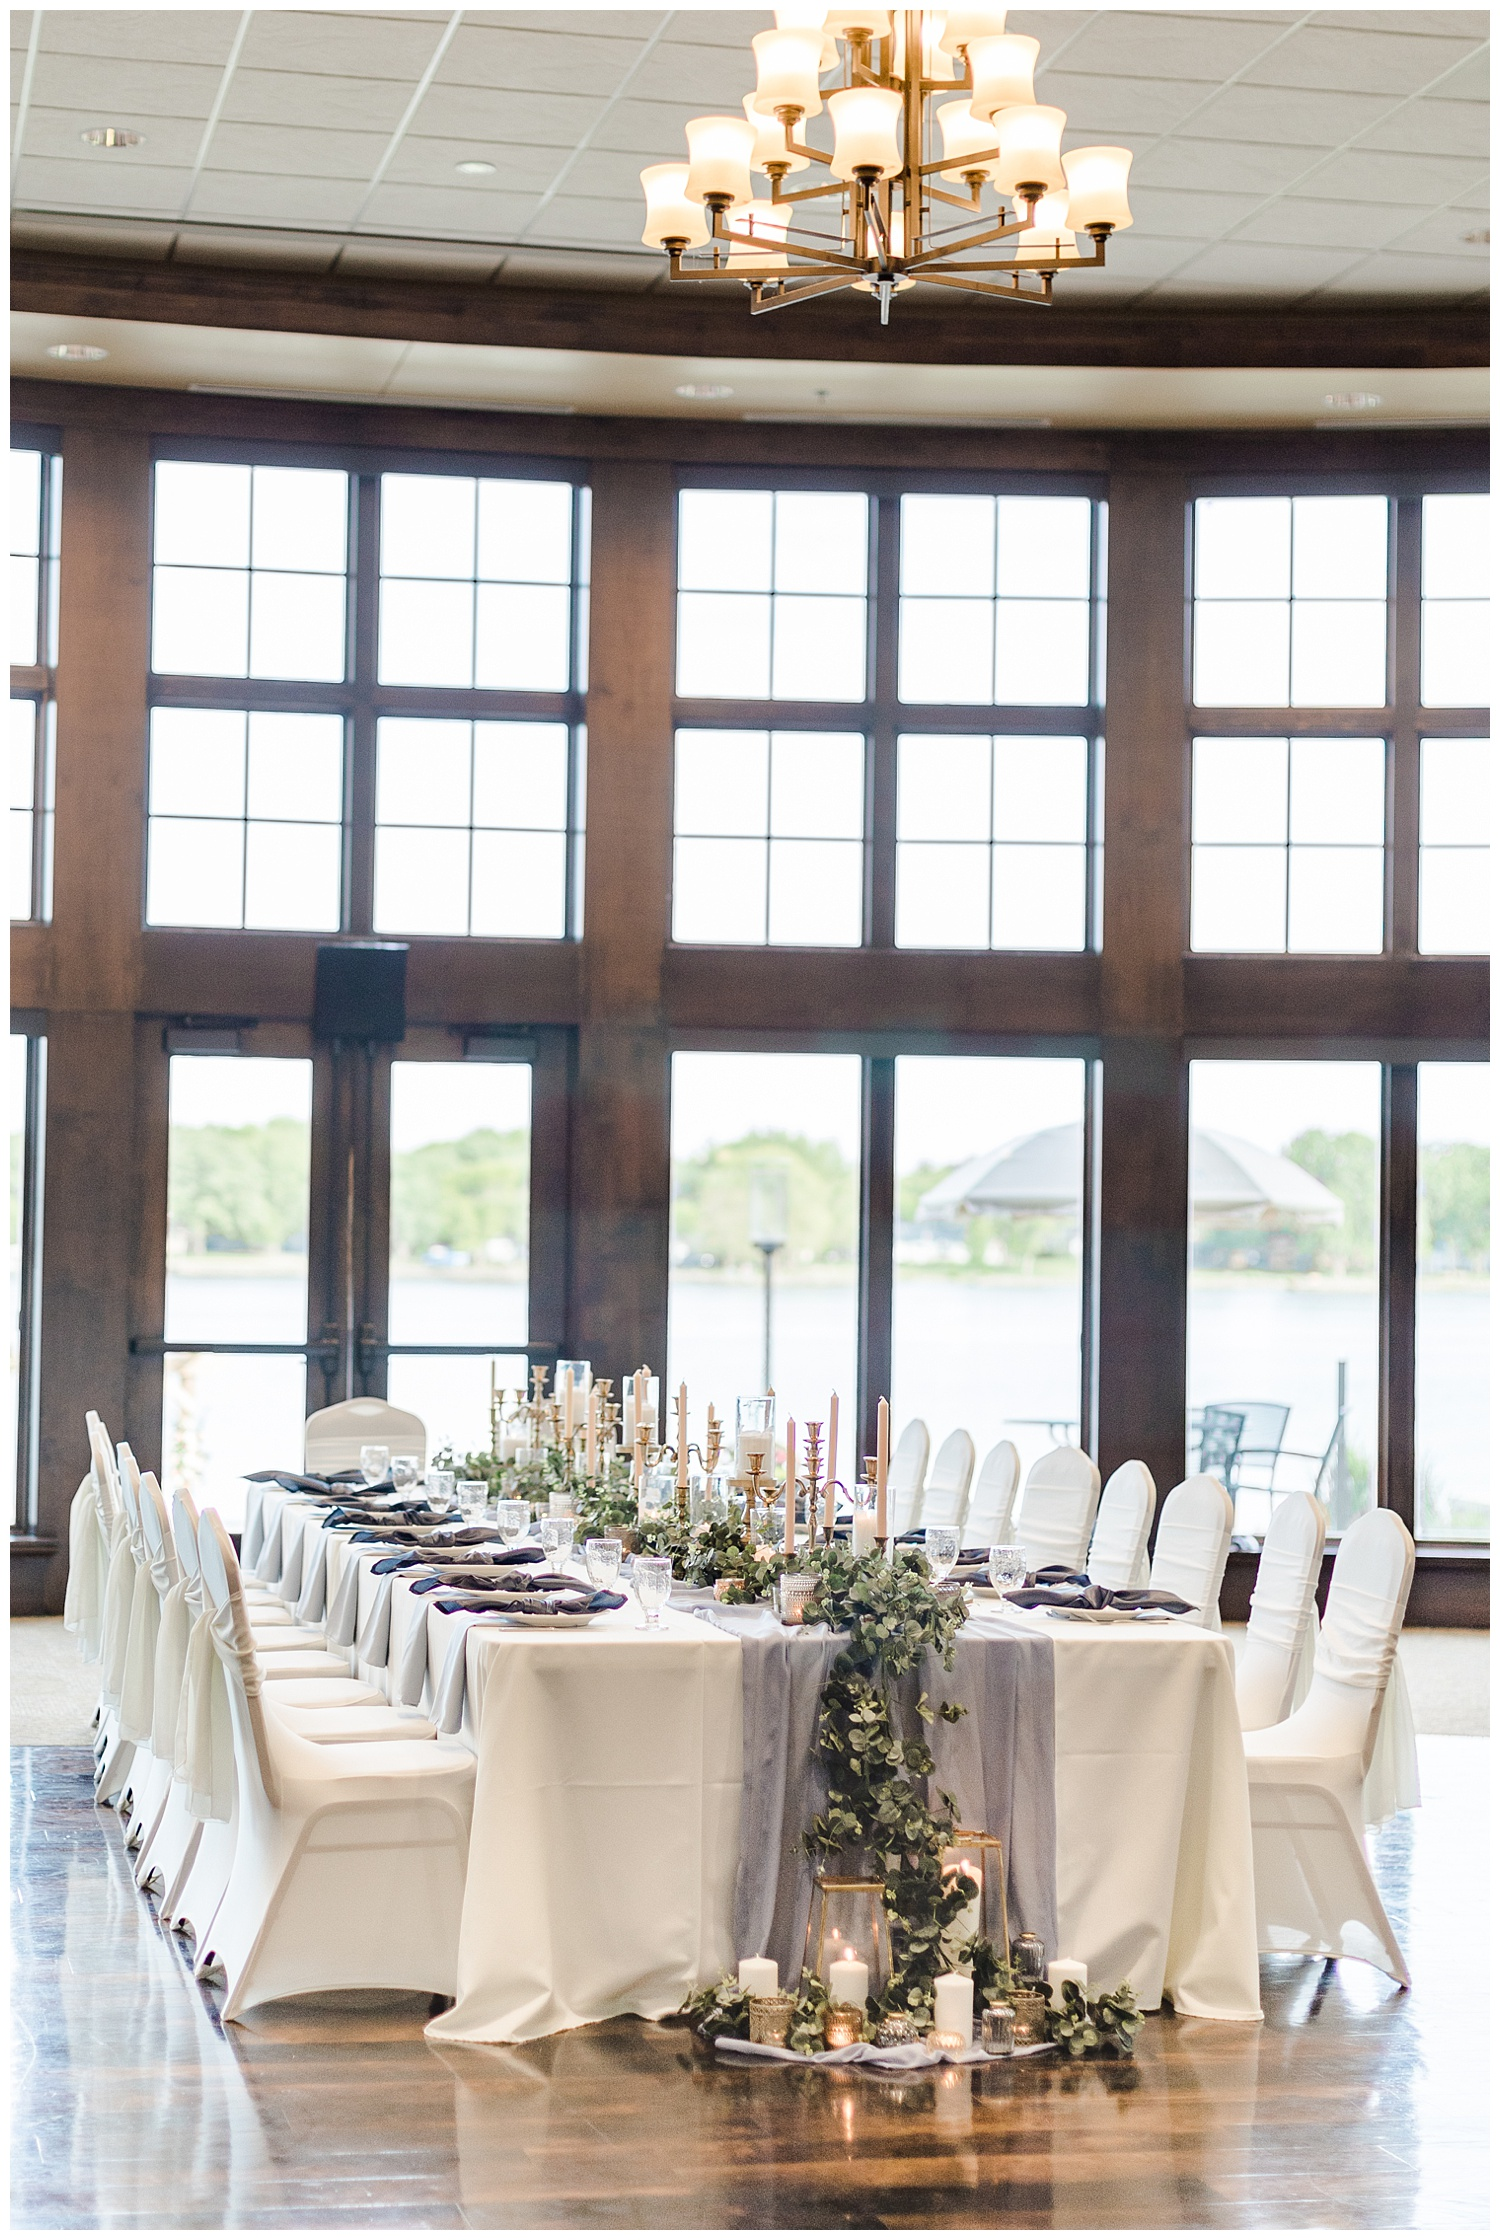 Dusty blue and peach kings wedding table topped with gold vintage candlesticks and eucalyptus at the Shores at Five Island | CB Studio